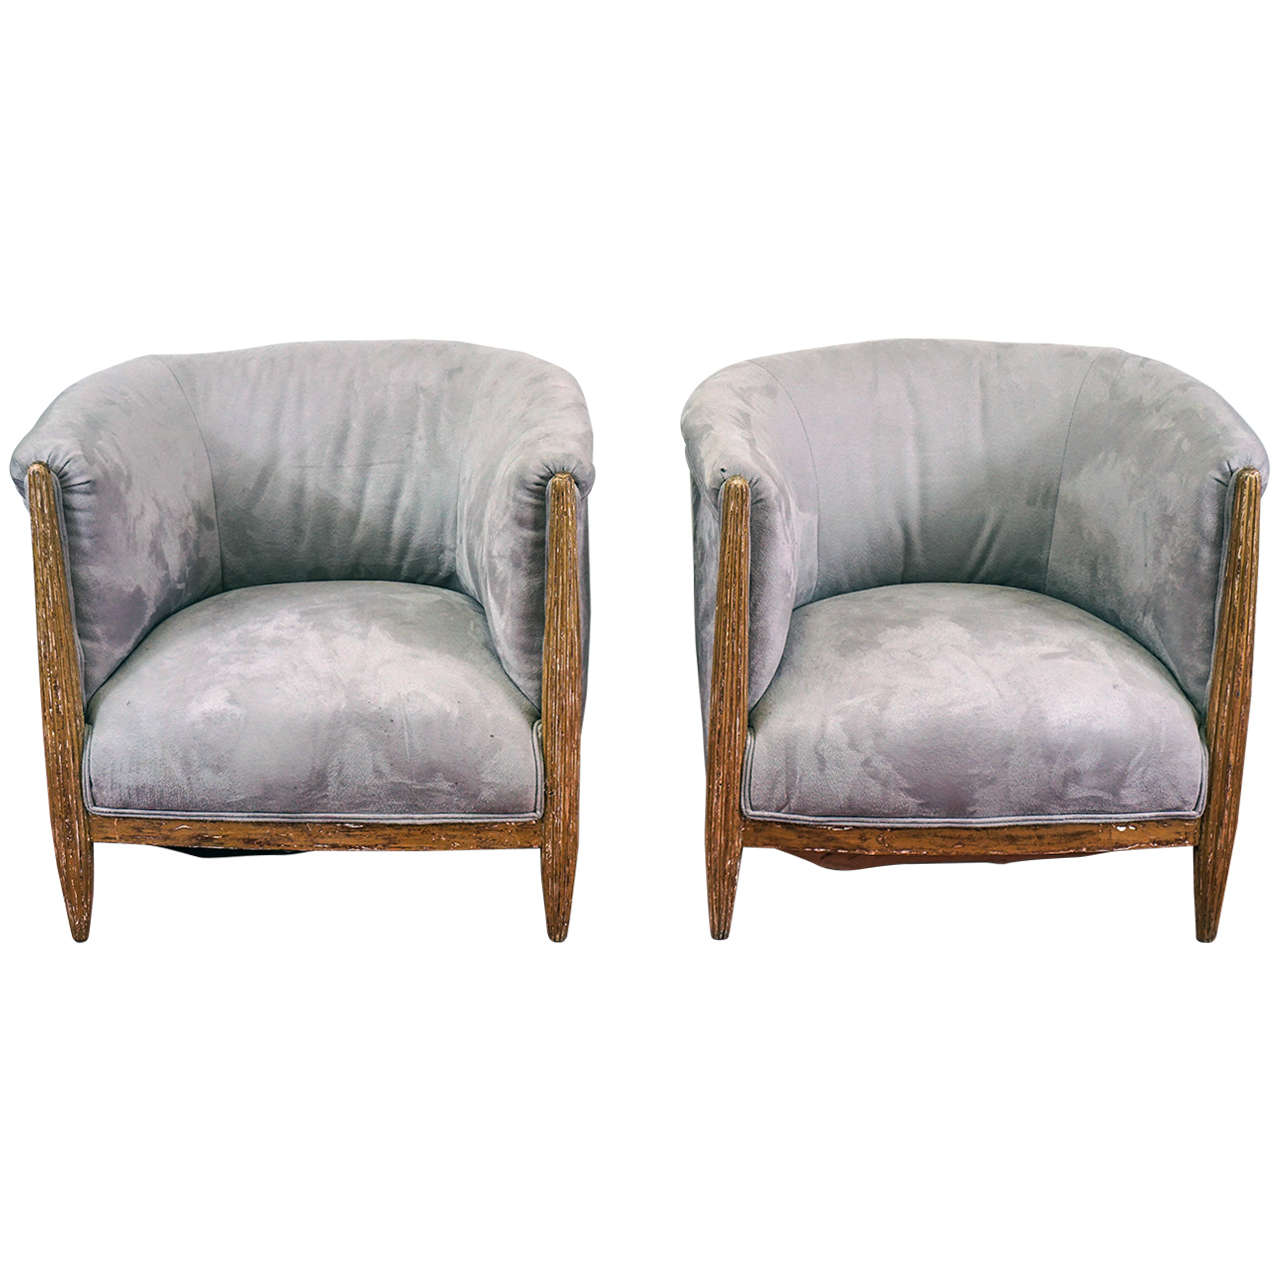 Pair of French Art Deco Barrel Back Armchairs For Sale